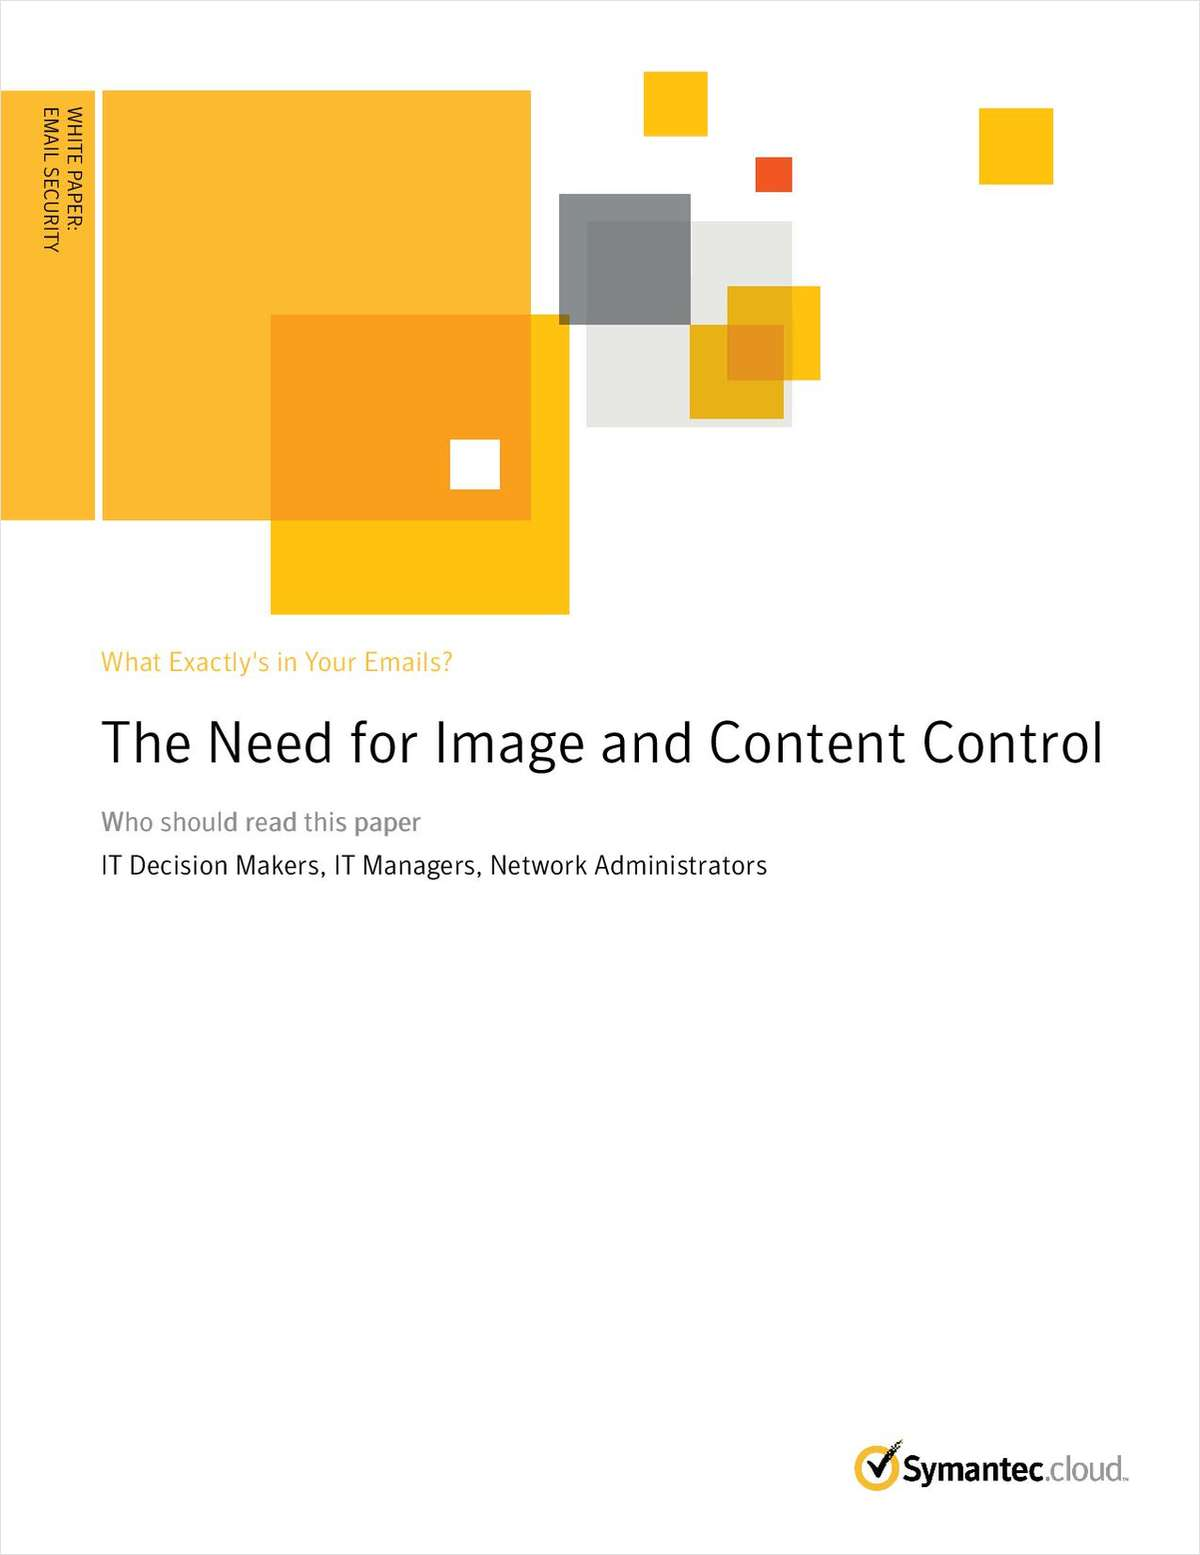 The Need for Image and Content Control